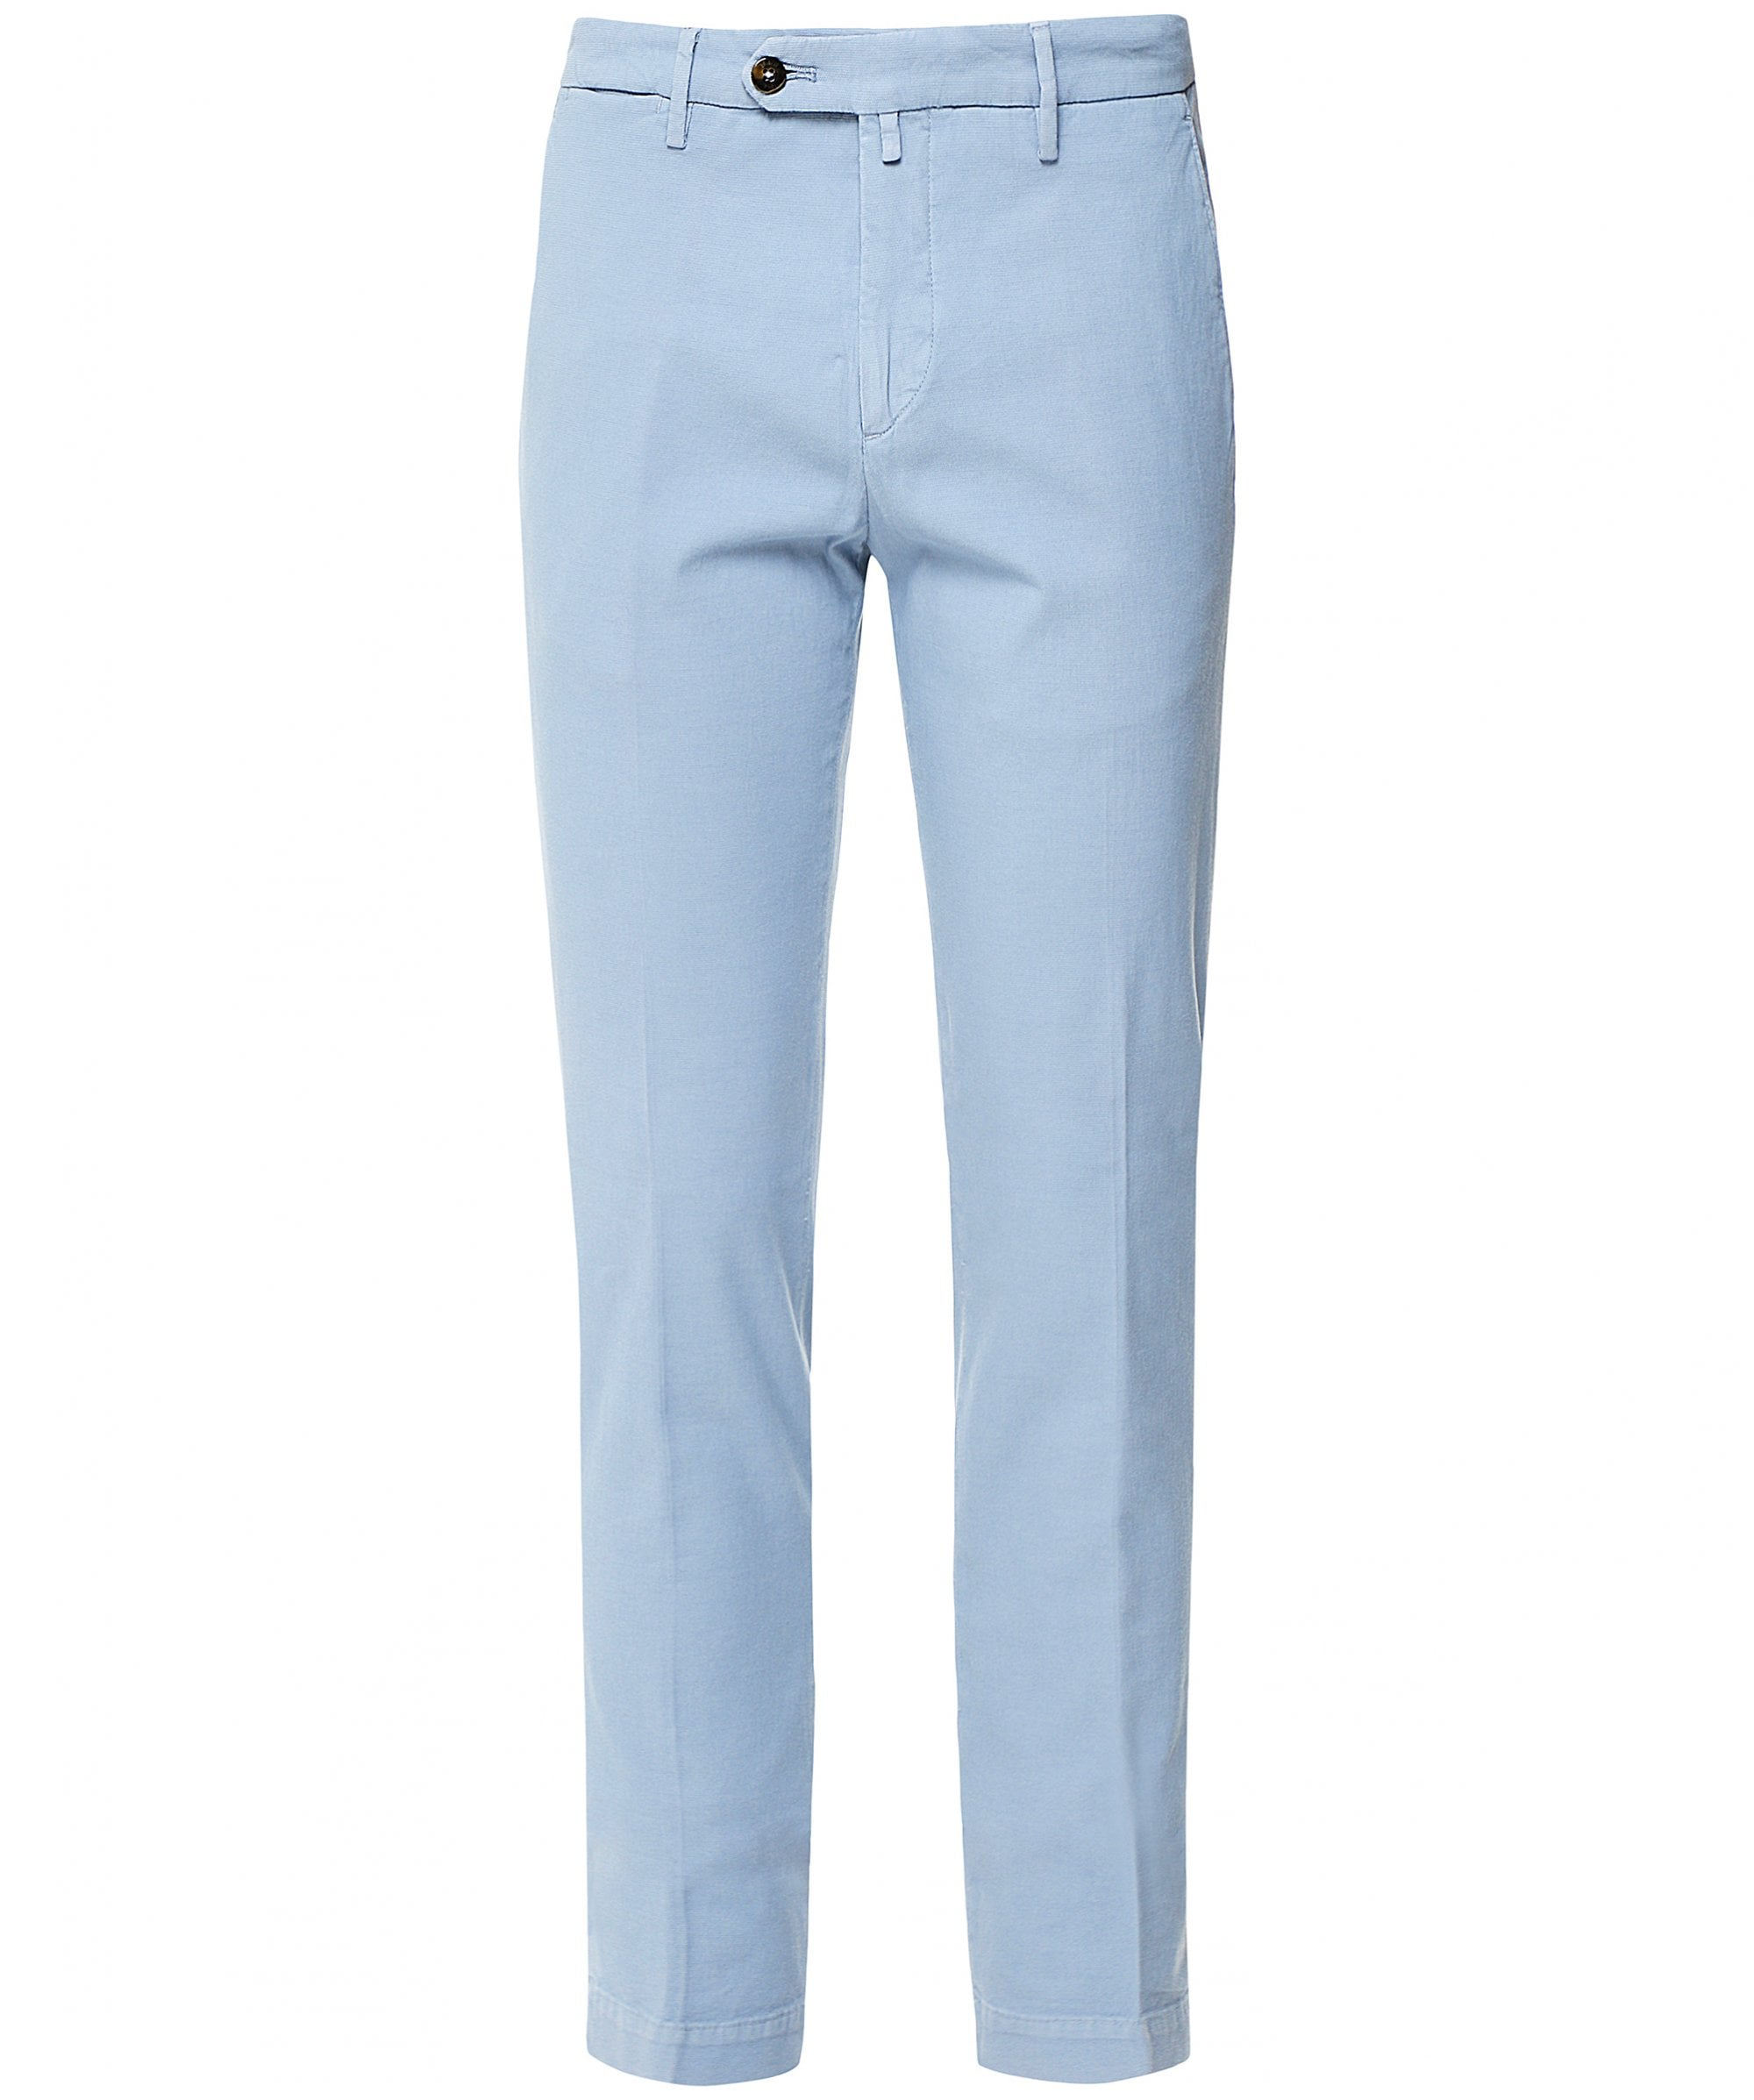 Briglia 1949 - Sky Blue Coloured Slim Fit Cotton Stretch Chinos BG04 321030